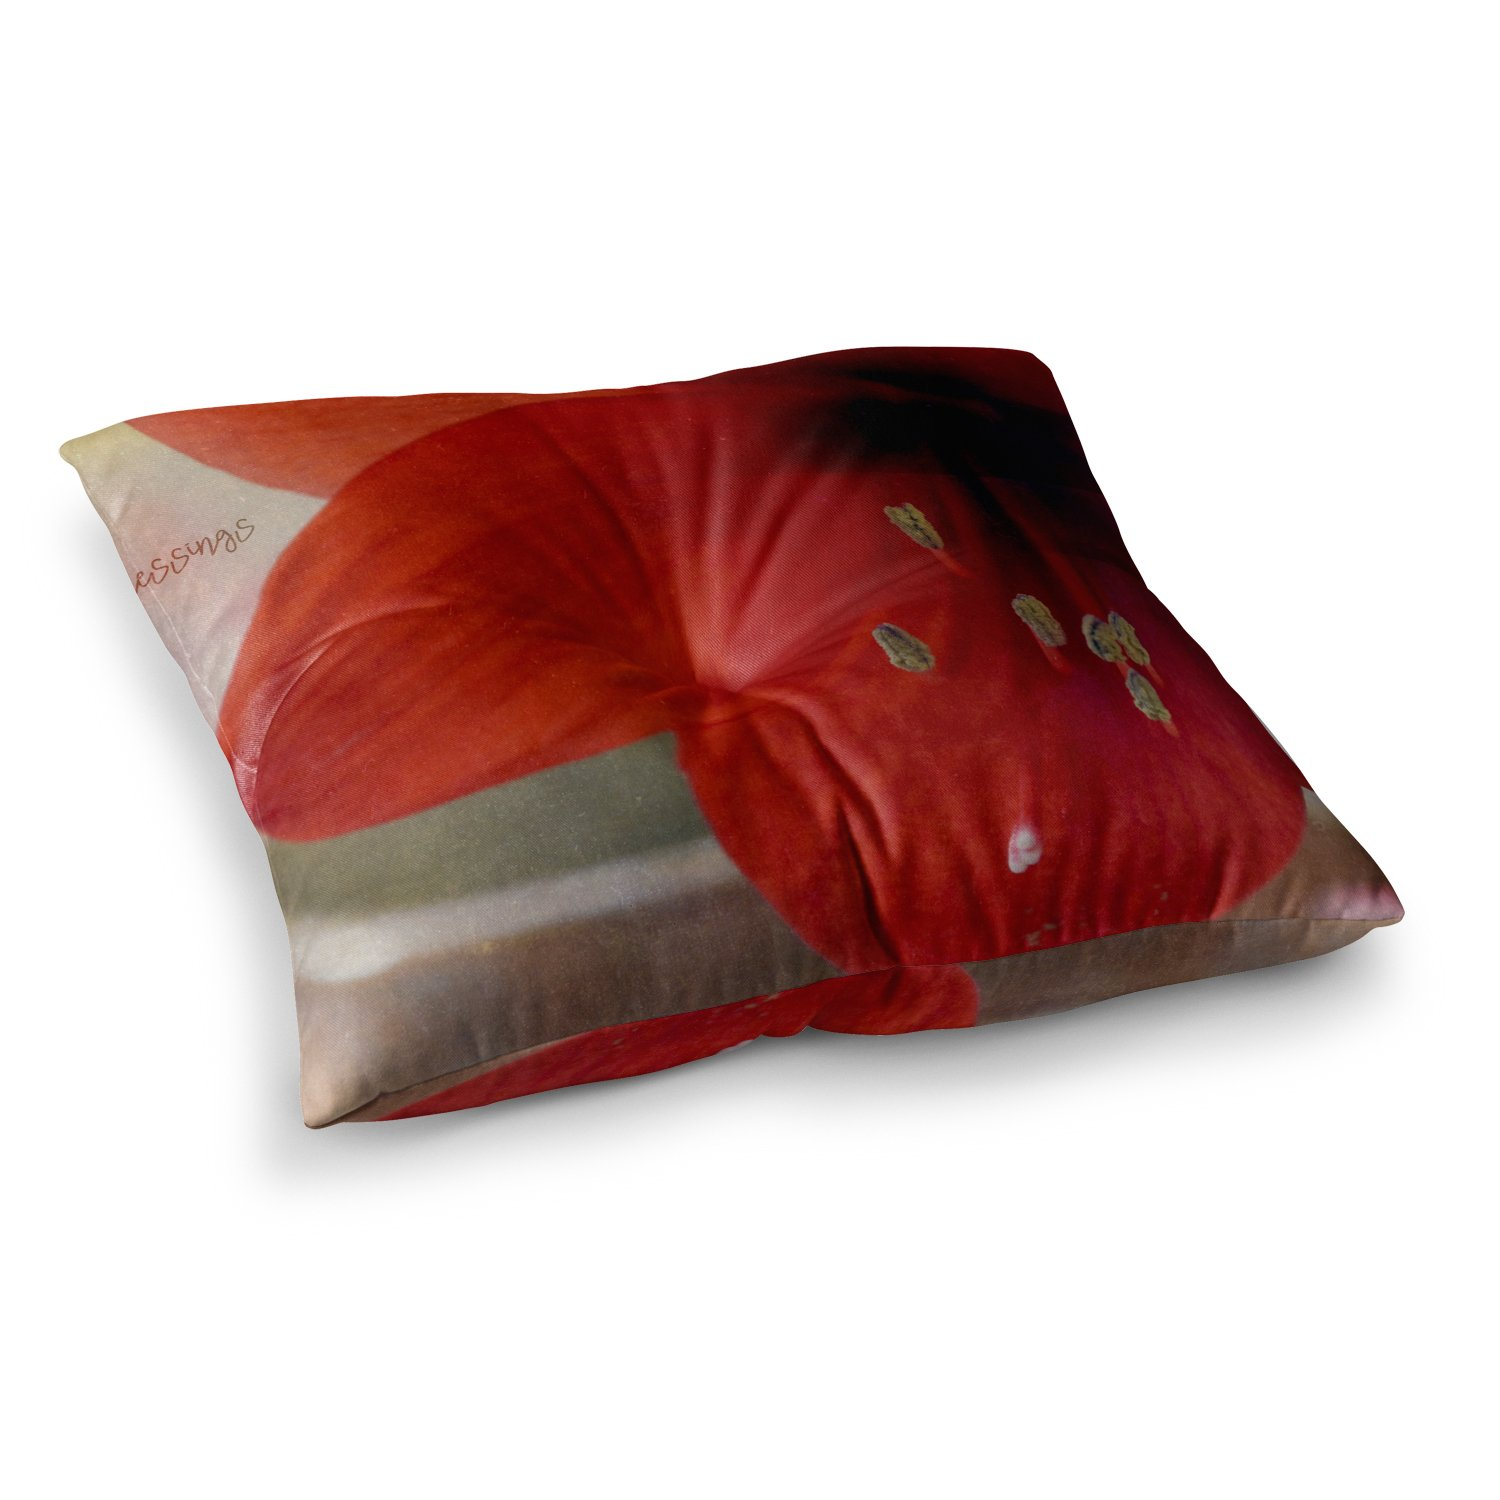 Kess InHouse Robin Dickinson Count Your Blessings Red Floral 23 x 23 Square Floor Pillow